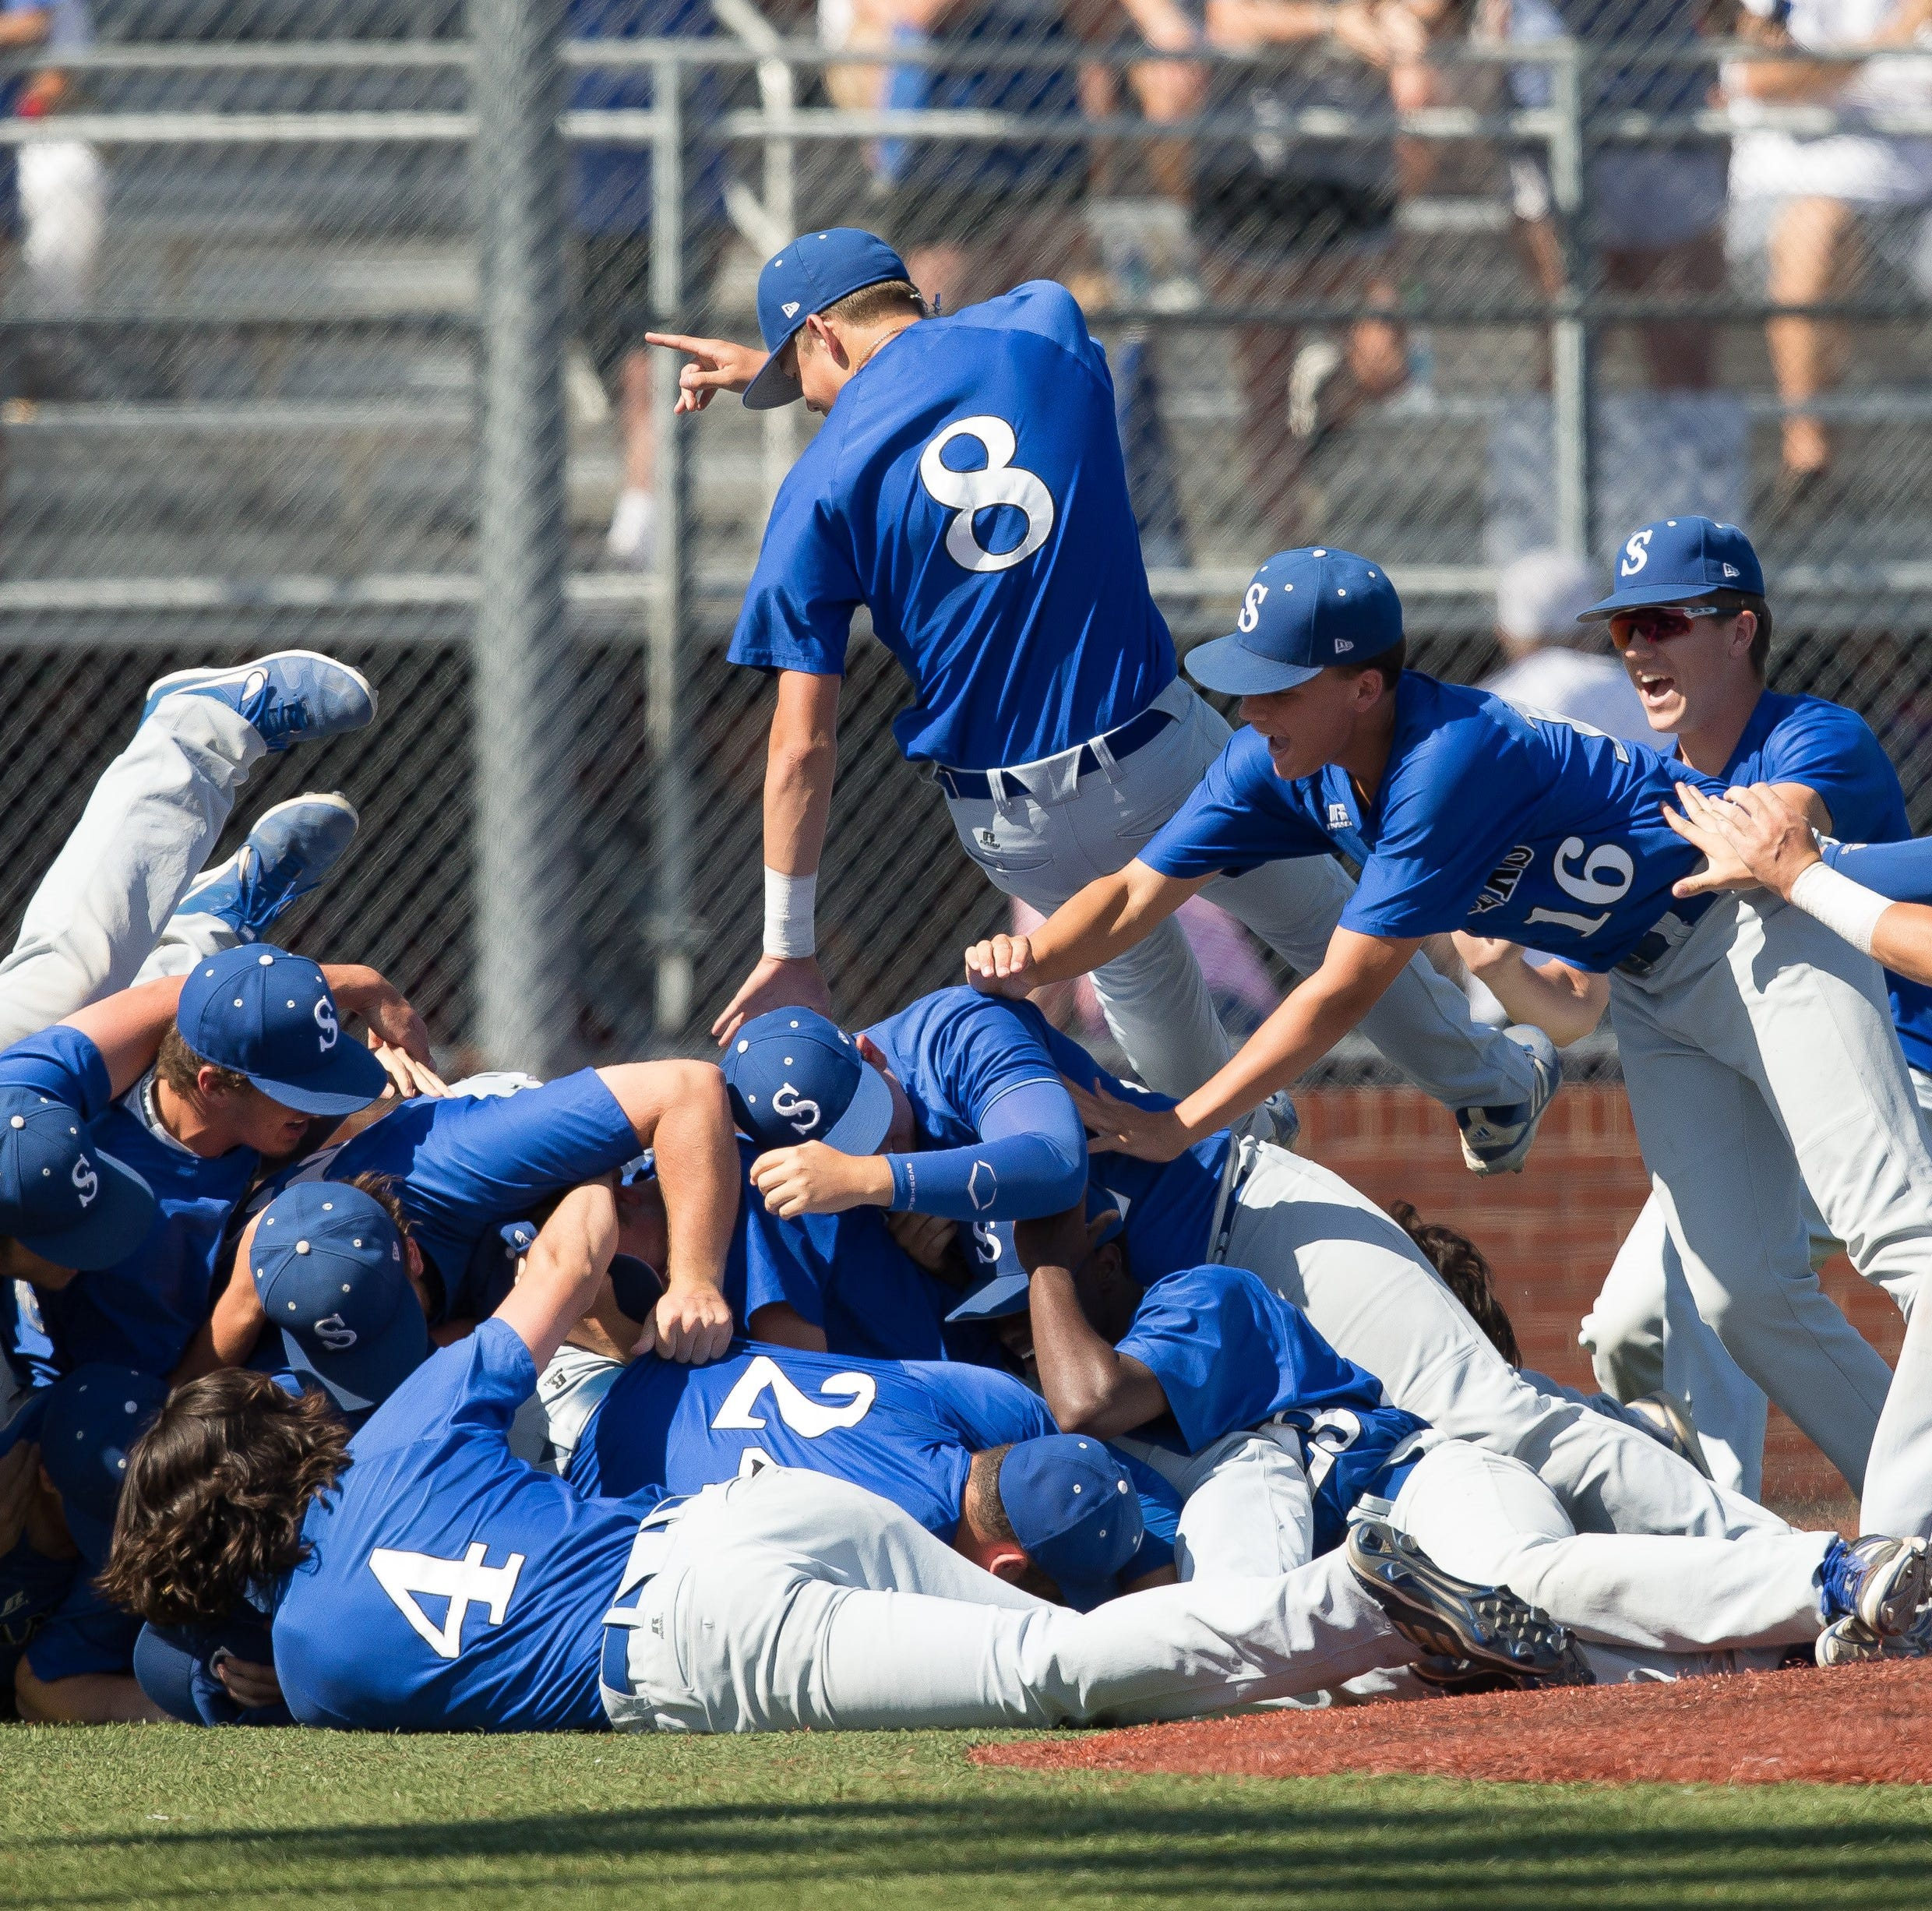 Sterlington celebrates a Class 3A state championship after beating South Beauregard, 4-2, on Tuesday at the Allstate Sugar Bowl/LHSAA Baseball State Tournament.